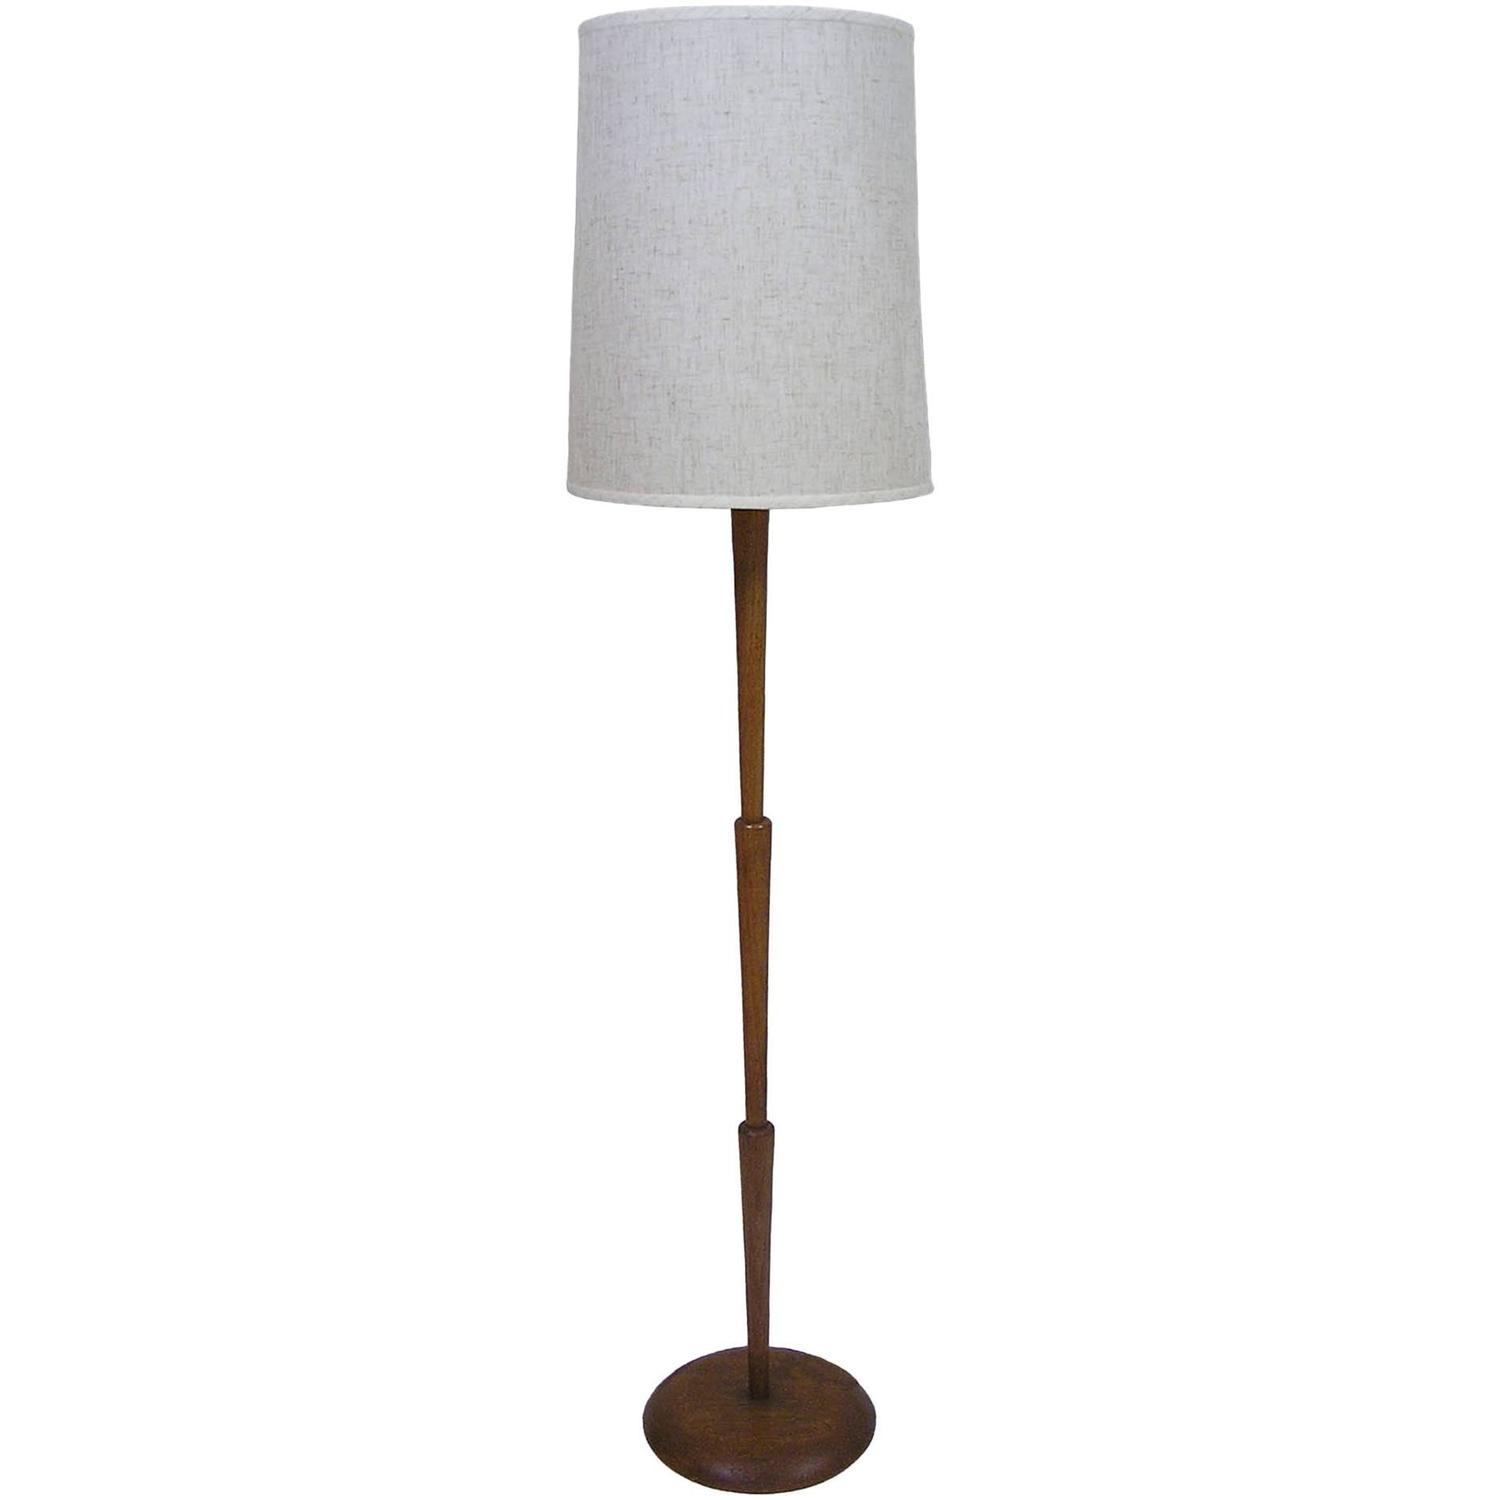 1970s sculpted teak floor lamp at 1stdibs for Tree floor lamp canada